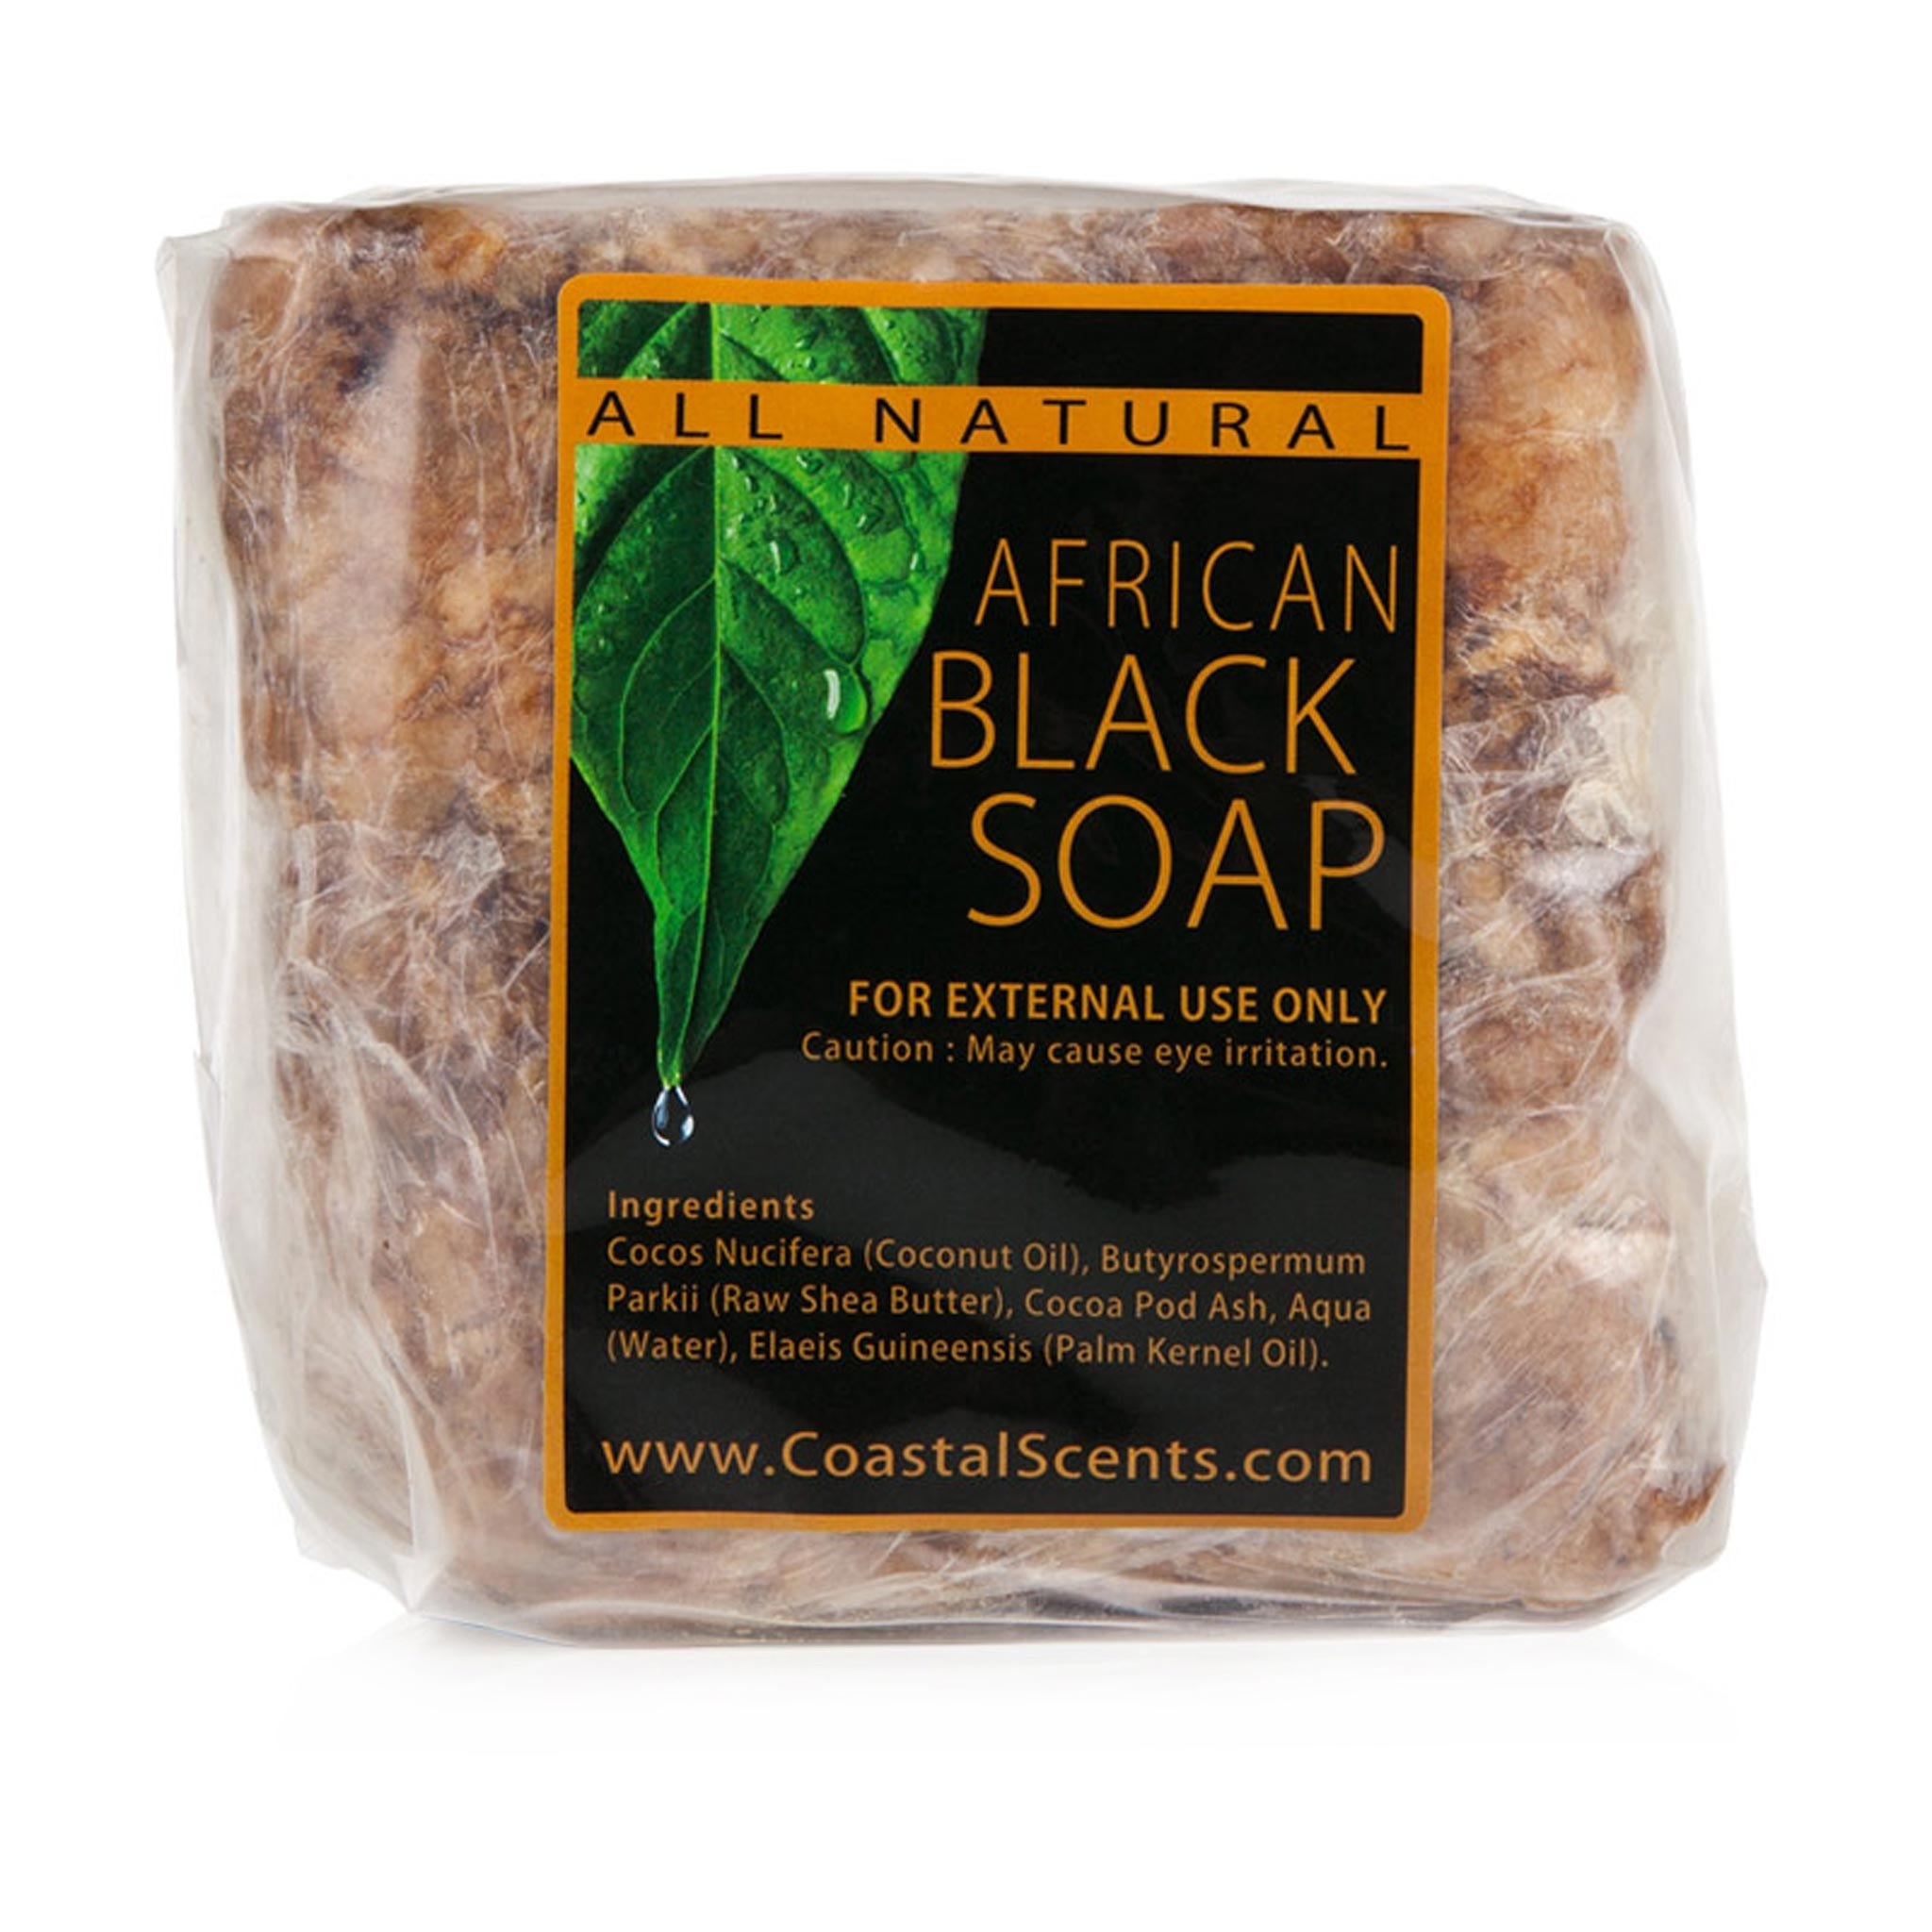 All regular soap is made from caustic soda(lye or also called sodium hydroxide). You can not make soap without lye. Even surfactant is made with lye and ...